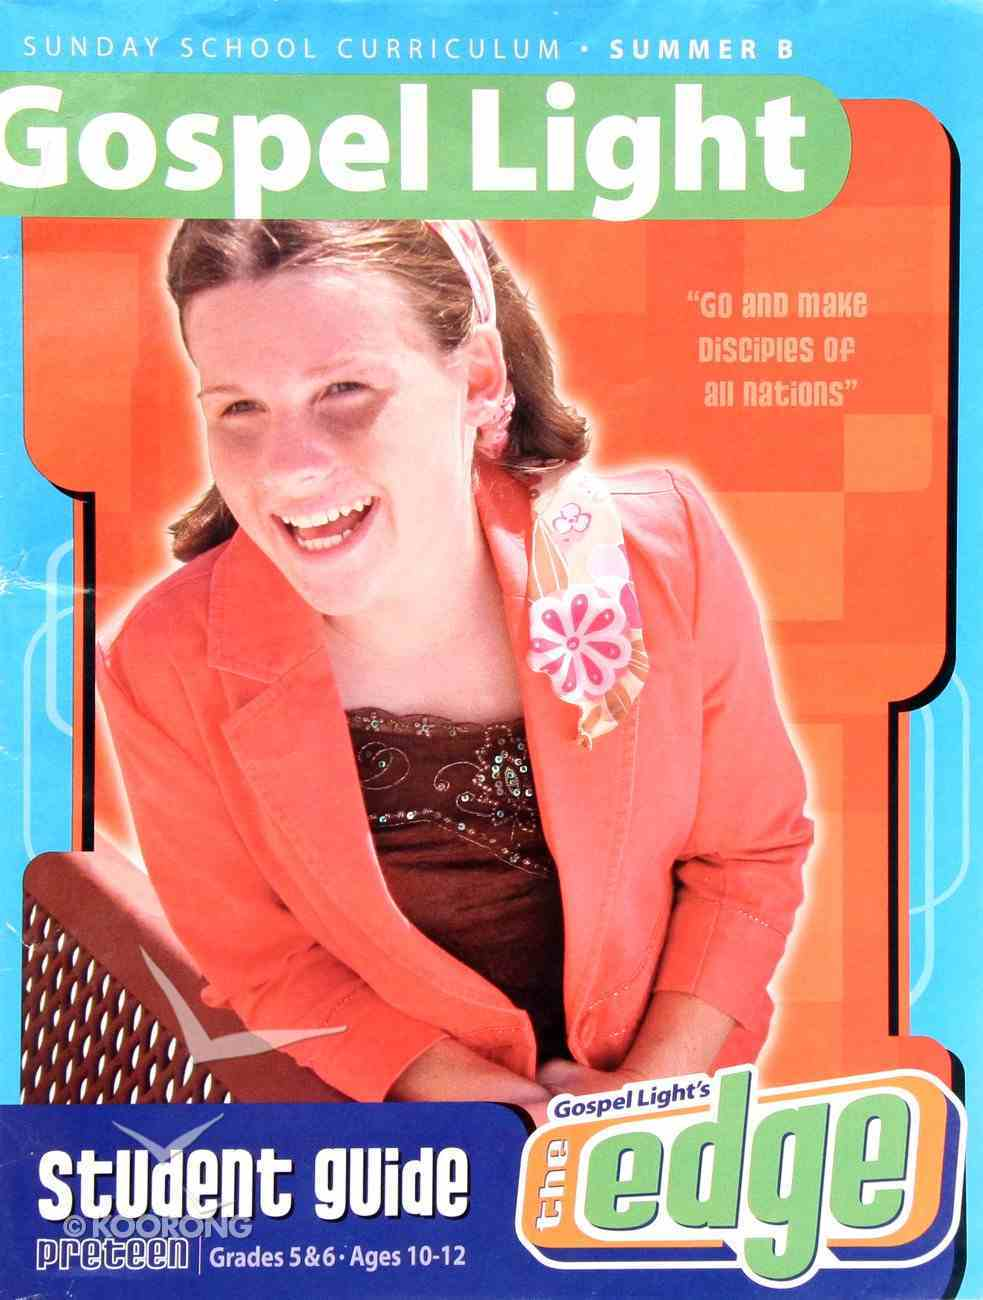 Gllw Summerb 2019/2020 Grades 5&6 Student Guide (Gospel Light Living Word Series) Paperback